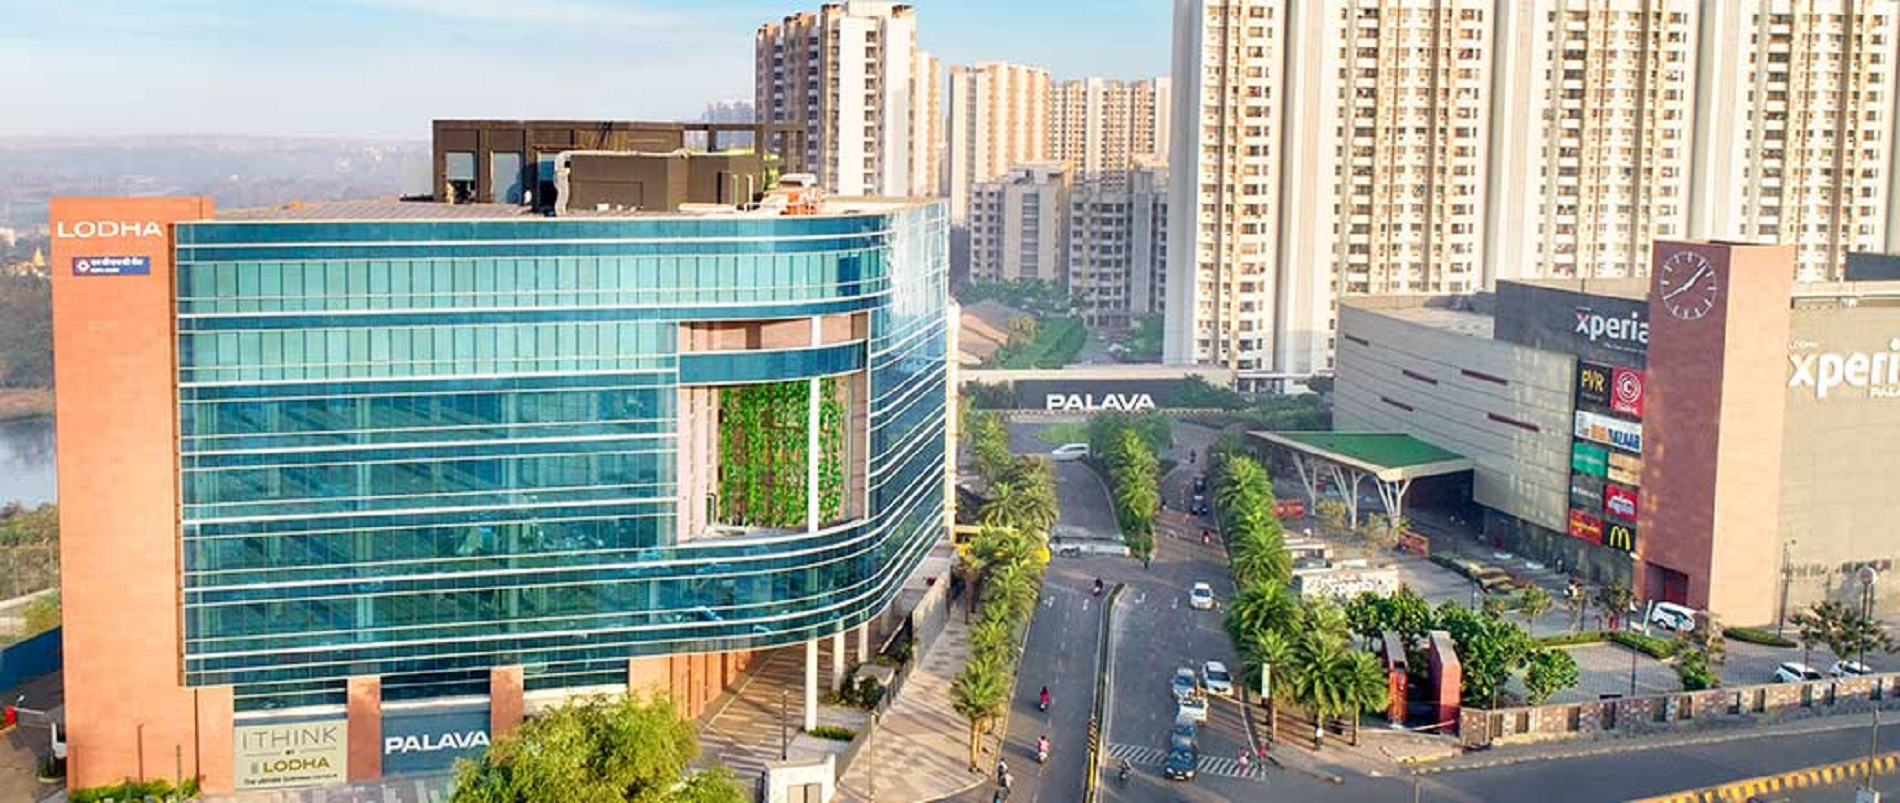 lodha palava aquaville series aurora a and d project amenities features18